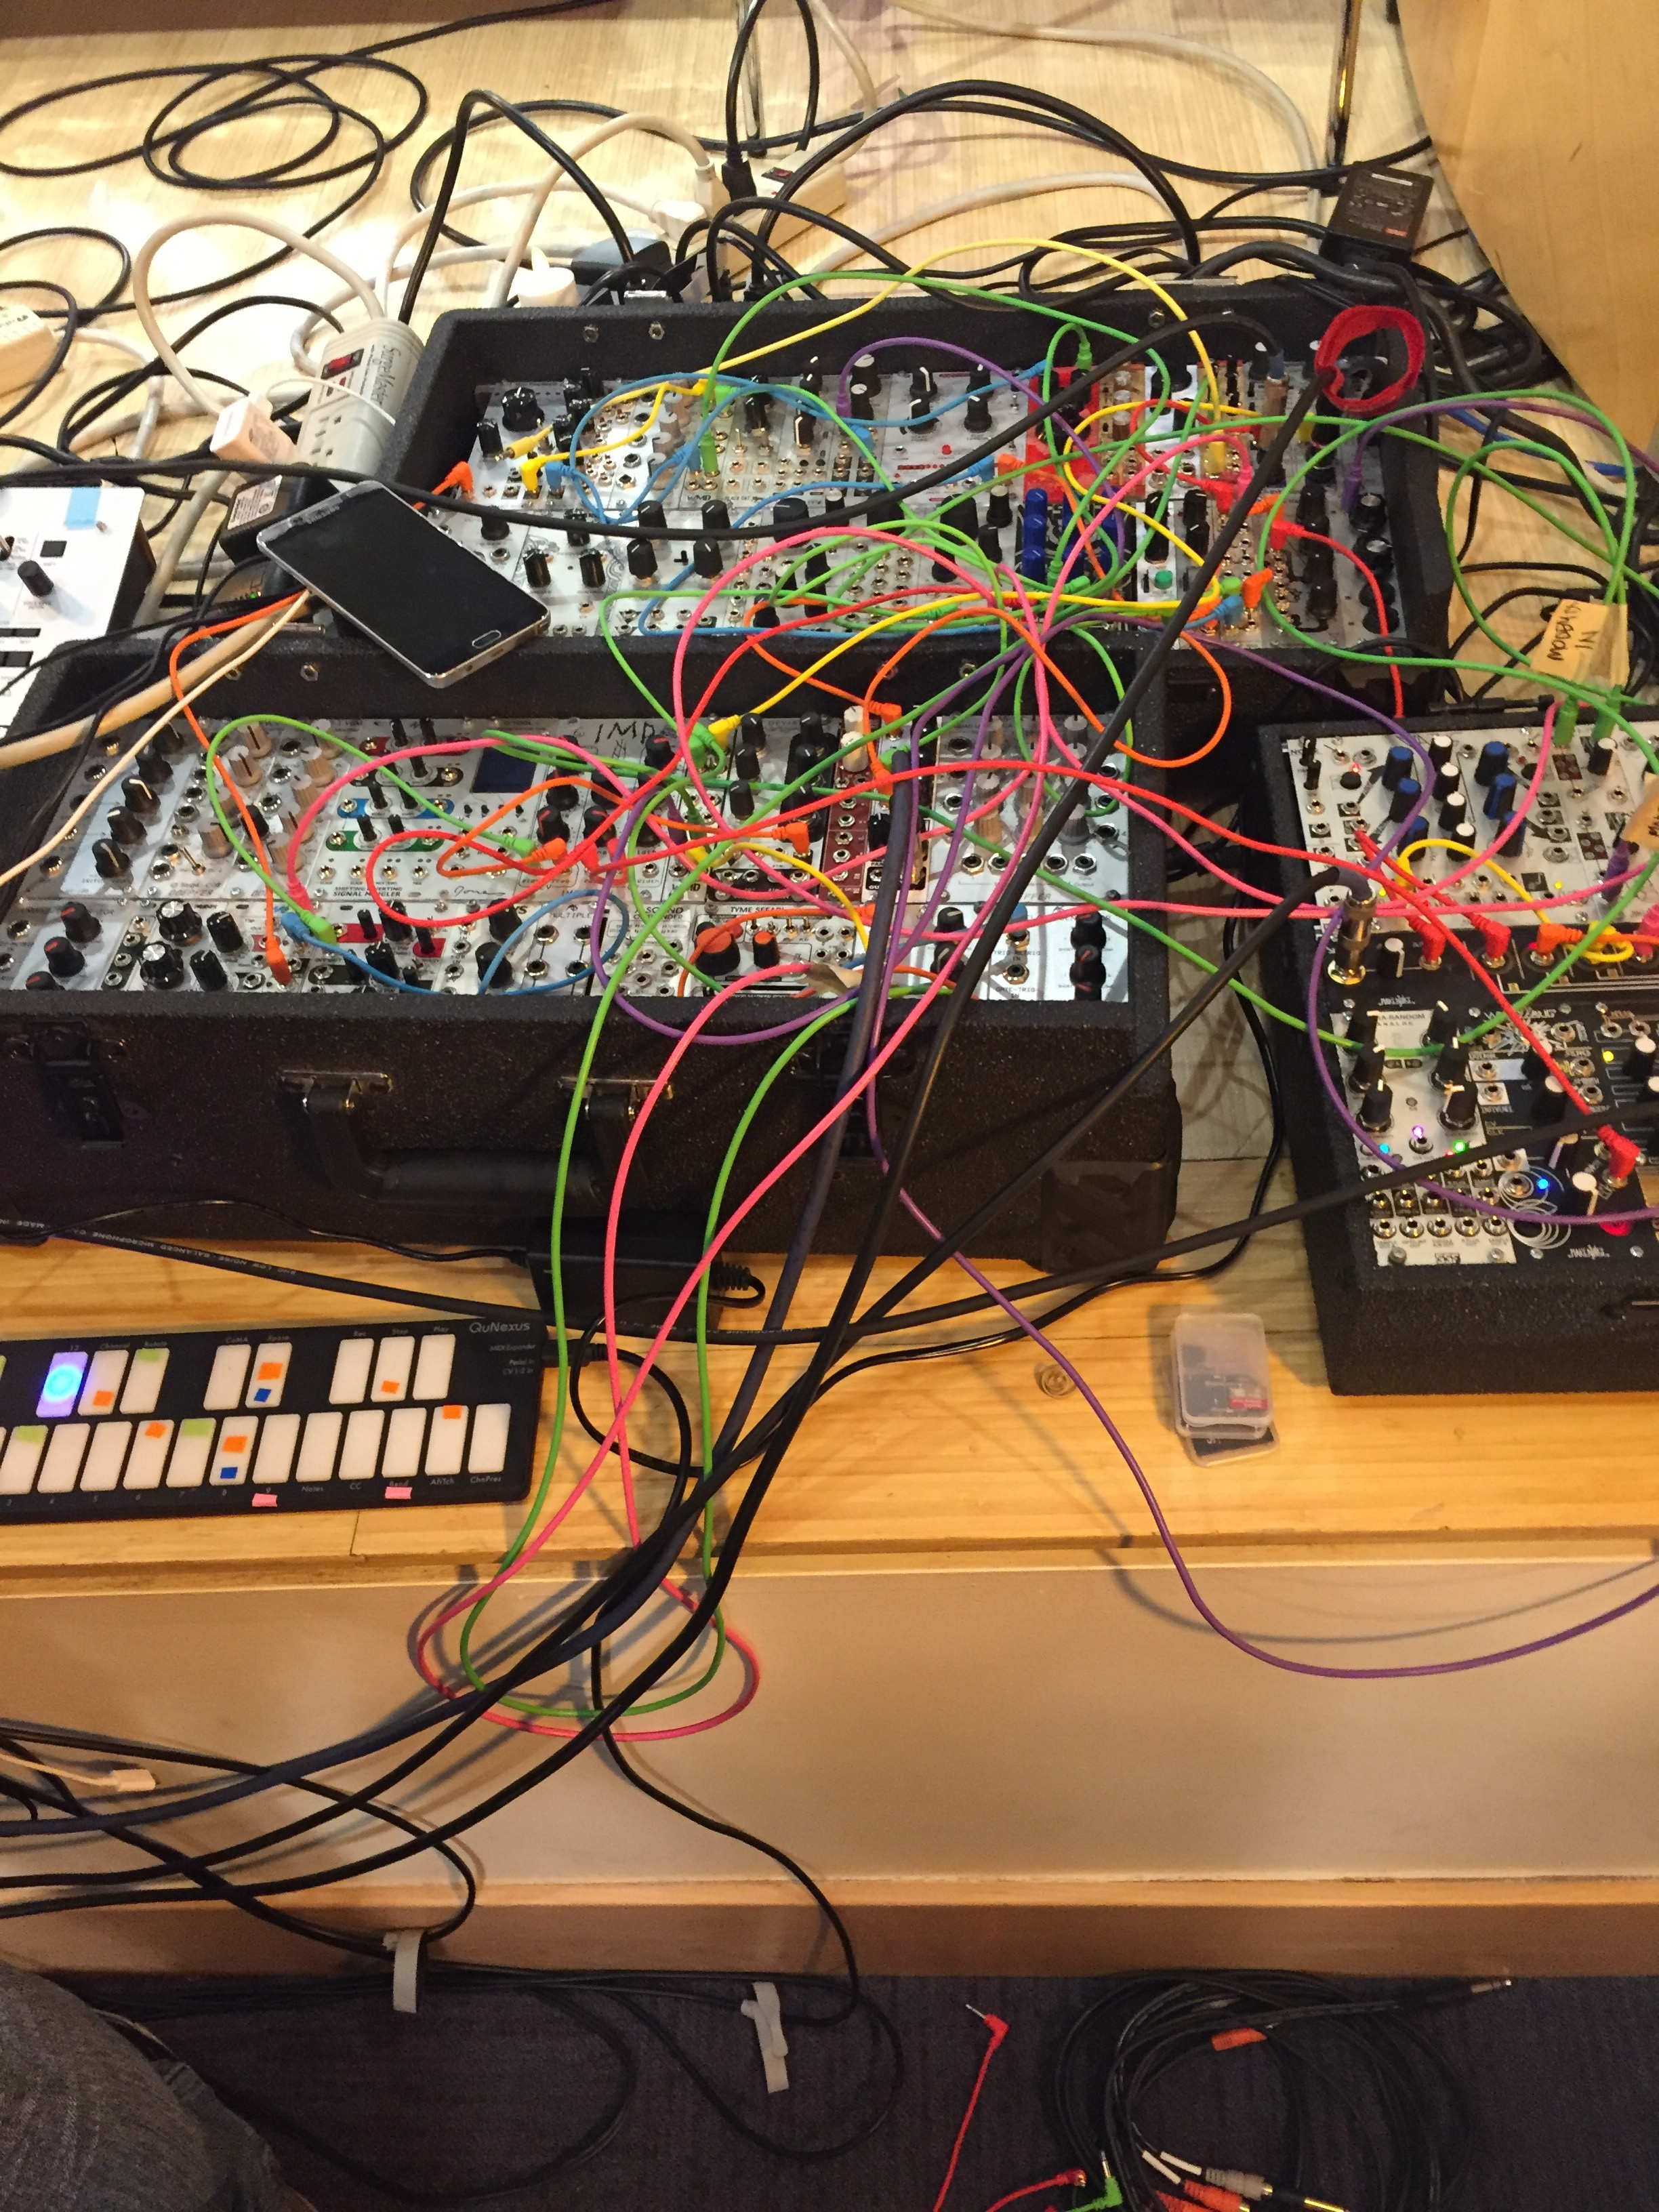 Sequenza21 The Contemporary Classical Music Community Electronic Harmonium Circuit Diagram And Electronics Even As She Was Buried In Costuming Makeup Ms Gingery Couldnt Have Been More Convincing Fittingly Jorge Martins Analog